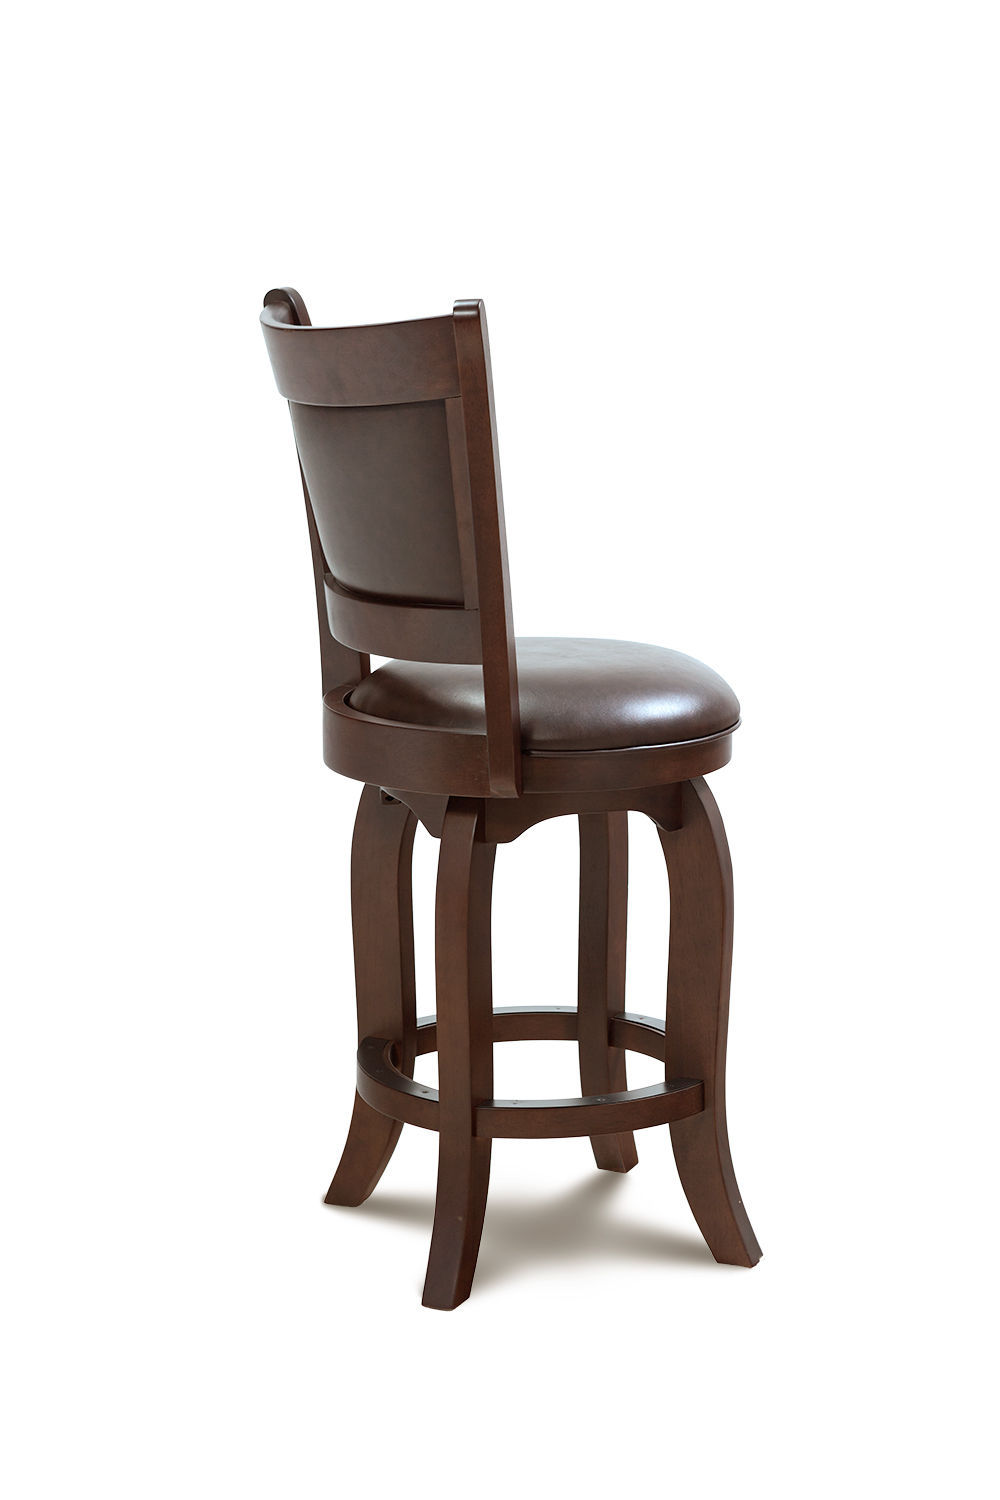 "27"" BRIGHTON COUNTER-HEIGHT SWIVEL BARSTOOL CHAIR IN WARM CHERRY"